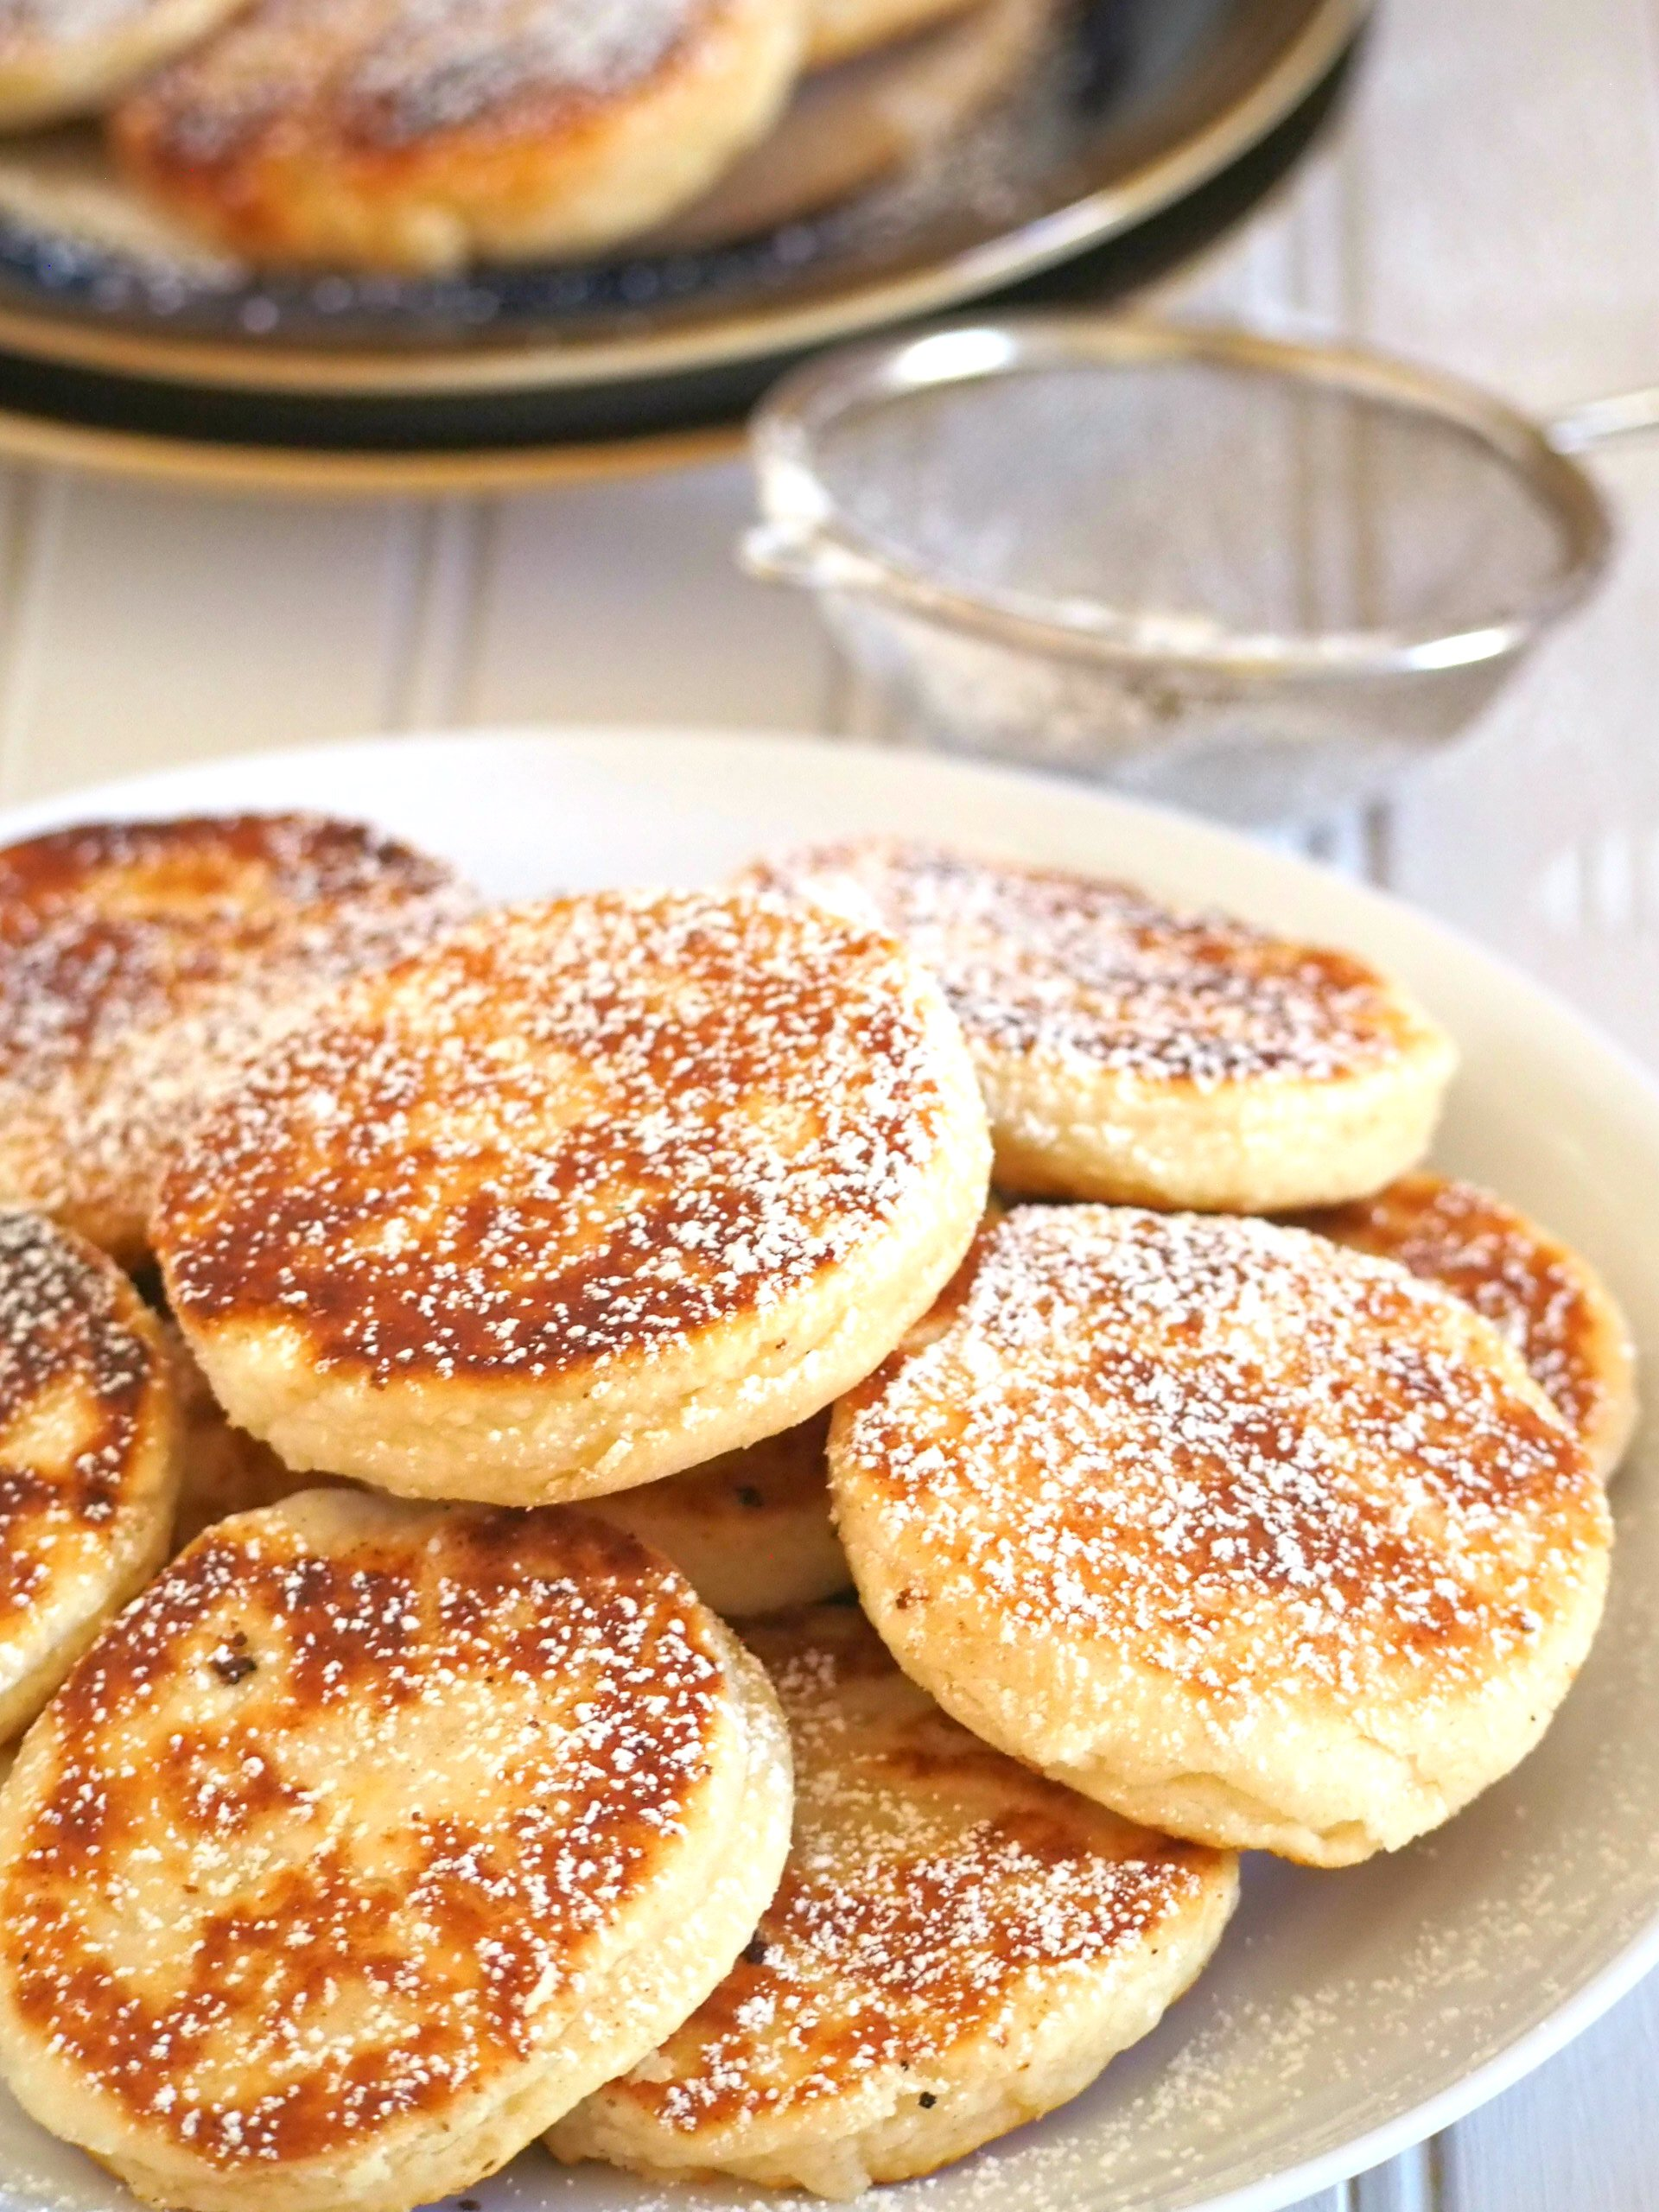 Welsh Cakes are soft and buttery little cakes delicious for snacking and are either served hot or cold. Serve them with your coffee or ice cream as they are satisfying little treats anytime of day.